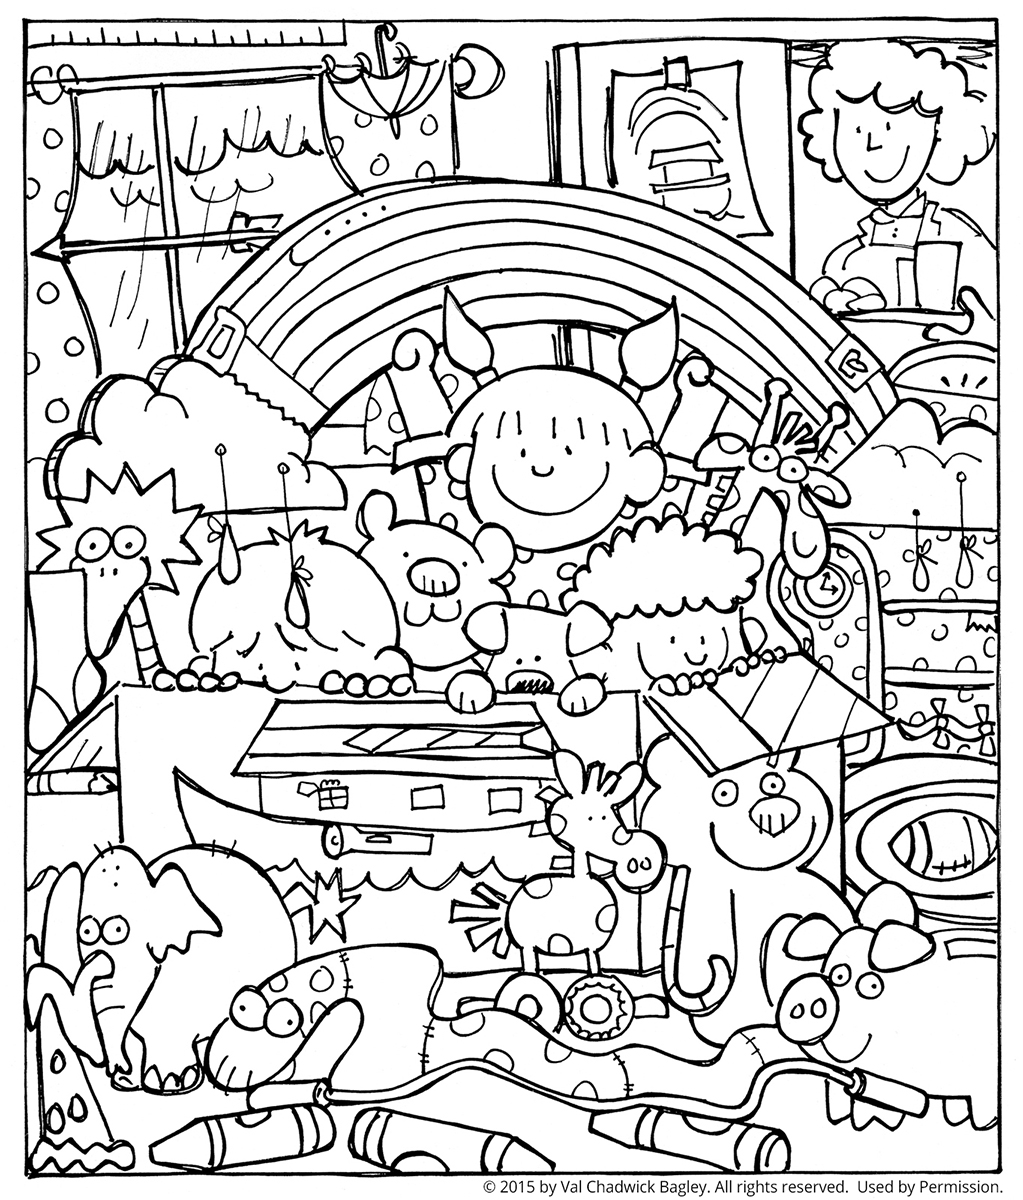 noah and the ark coloring page - Coloring Page For Toddlers